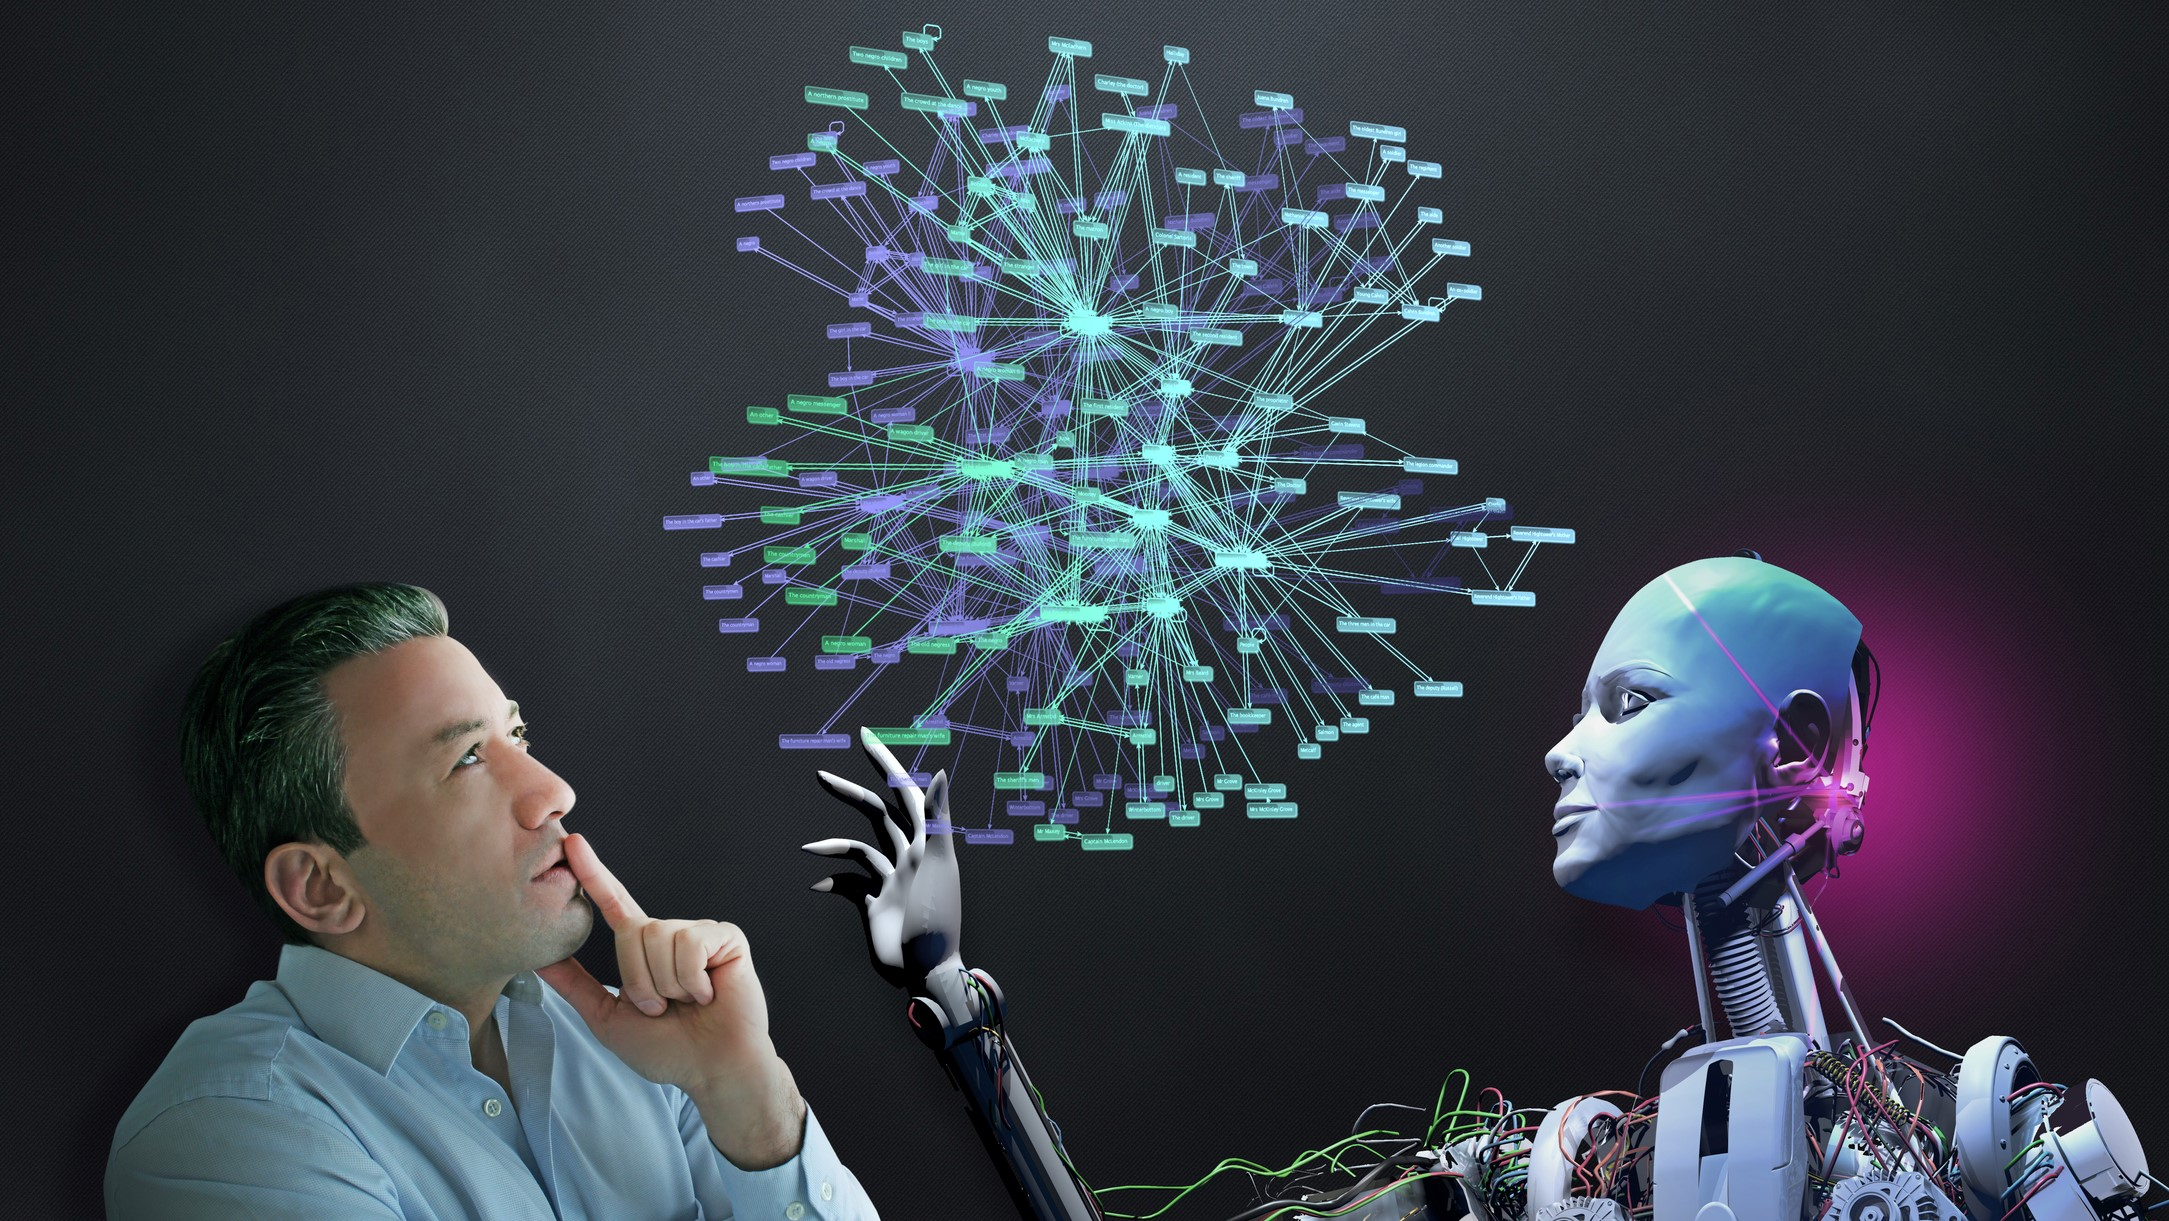 Placing humans at the centre of Artificial Intelligence